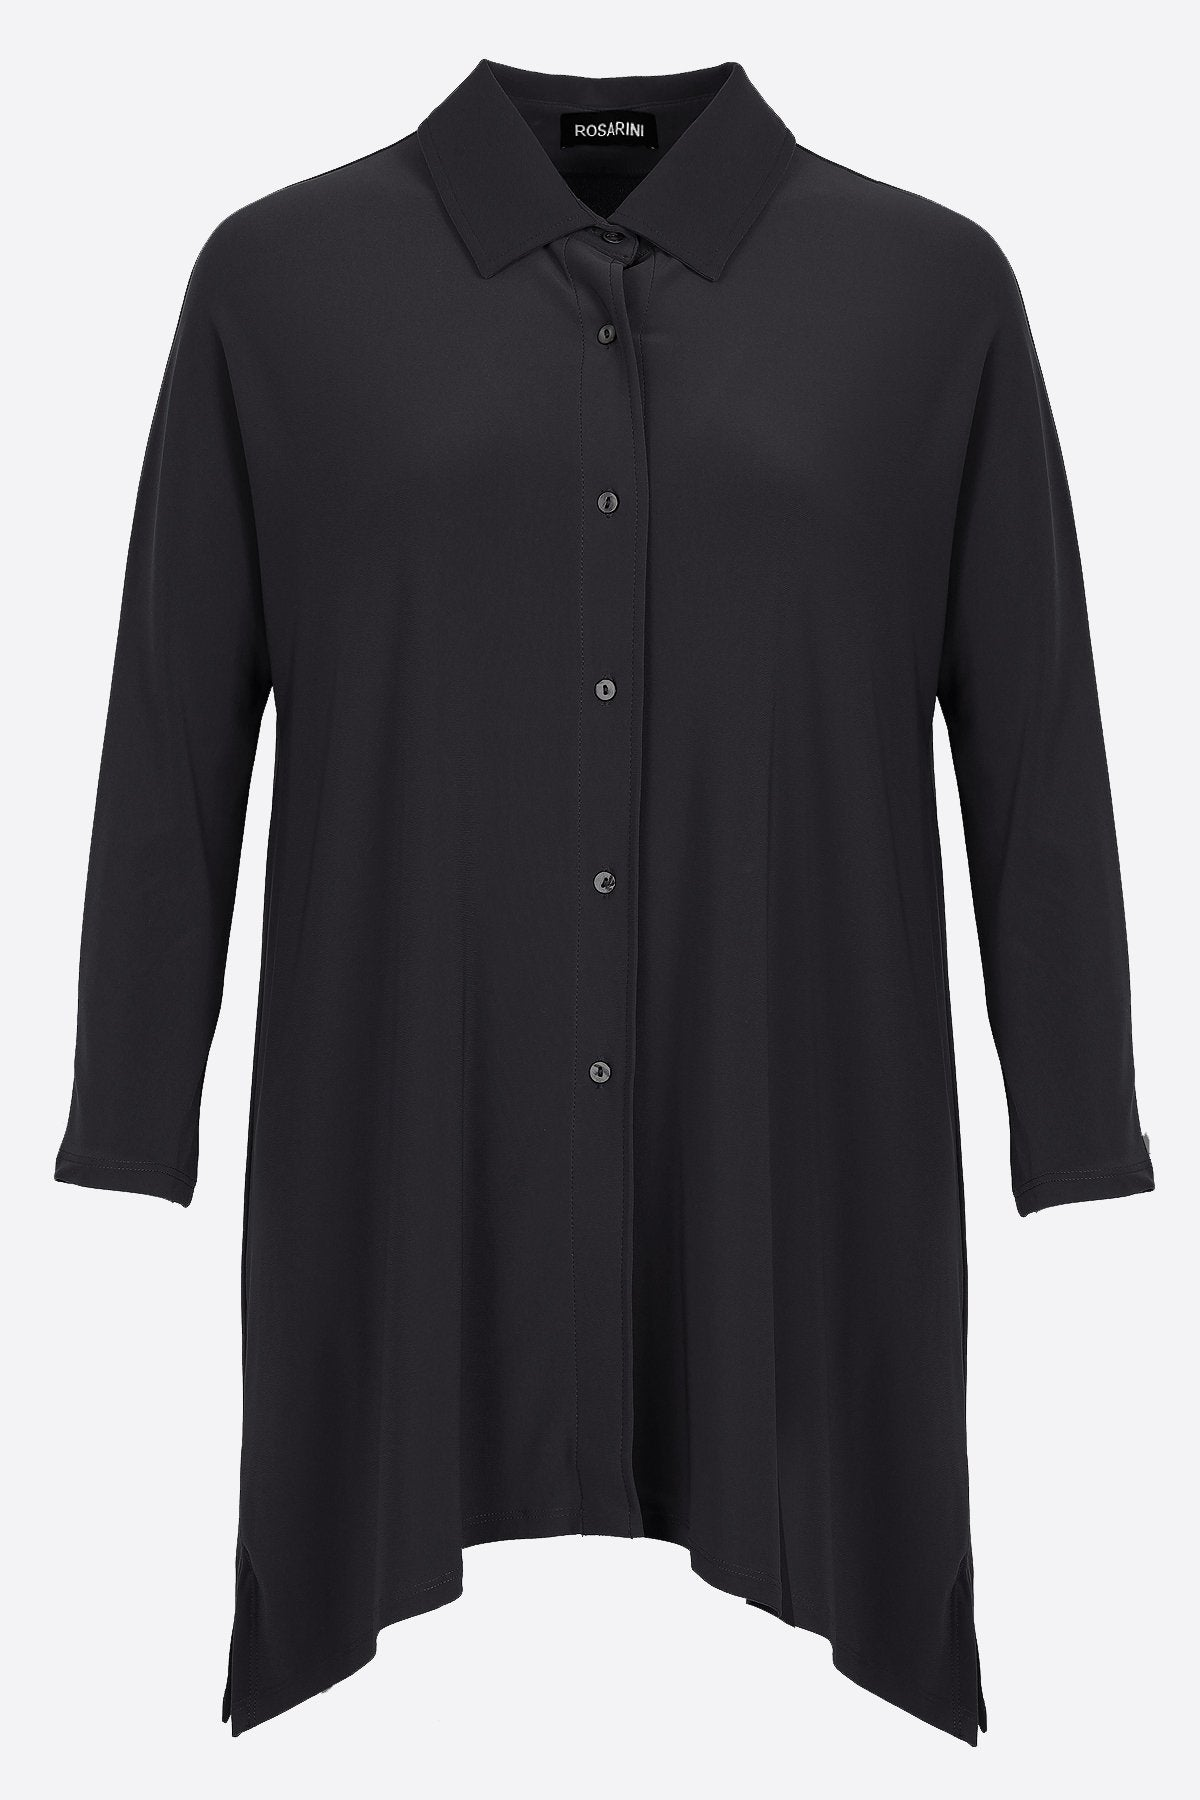 Women's Black Button Shirt with Curved Hem 3/4 Sleeves Travel Shirt Rosarini